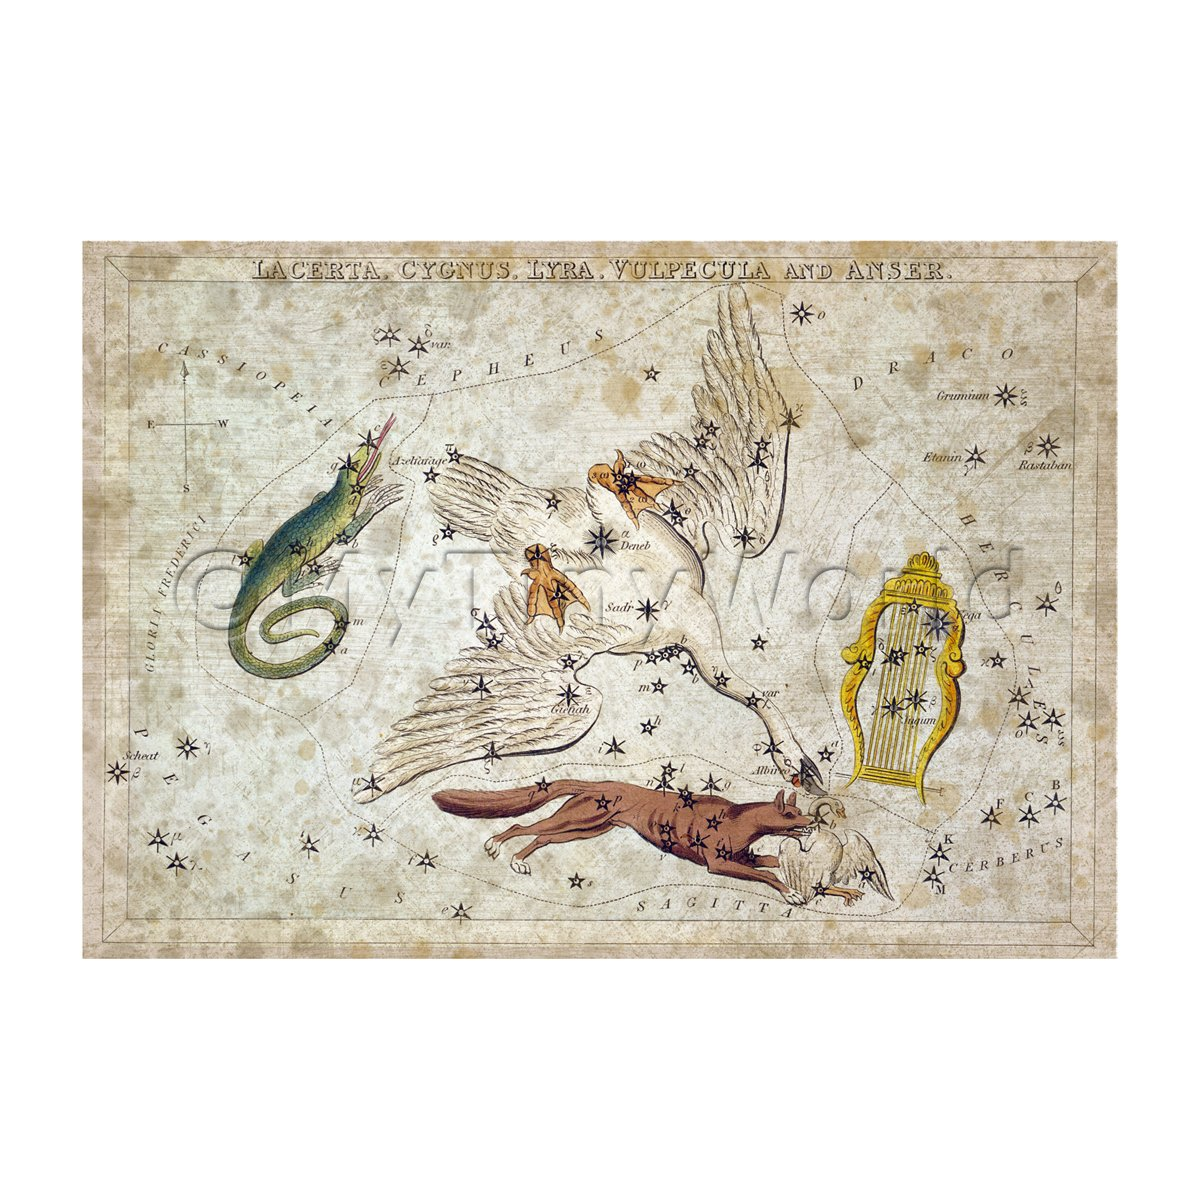 Dolls House Miniature Aged 1820s Star Map Depicting Lacerta, Cygnus